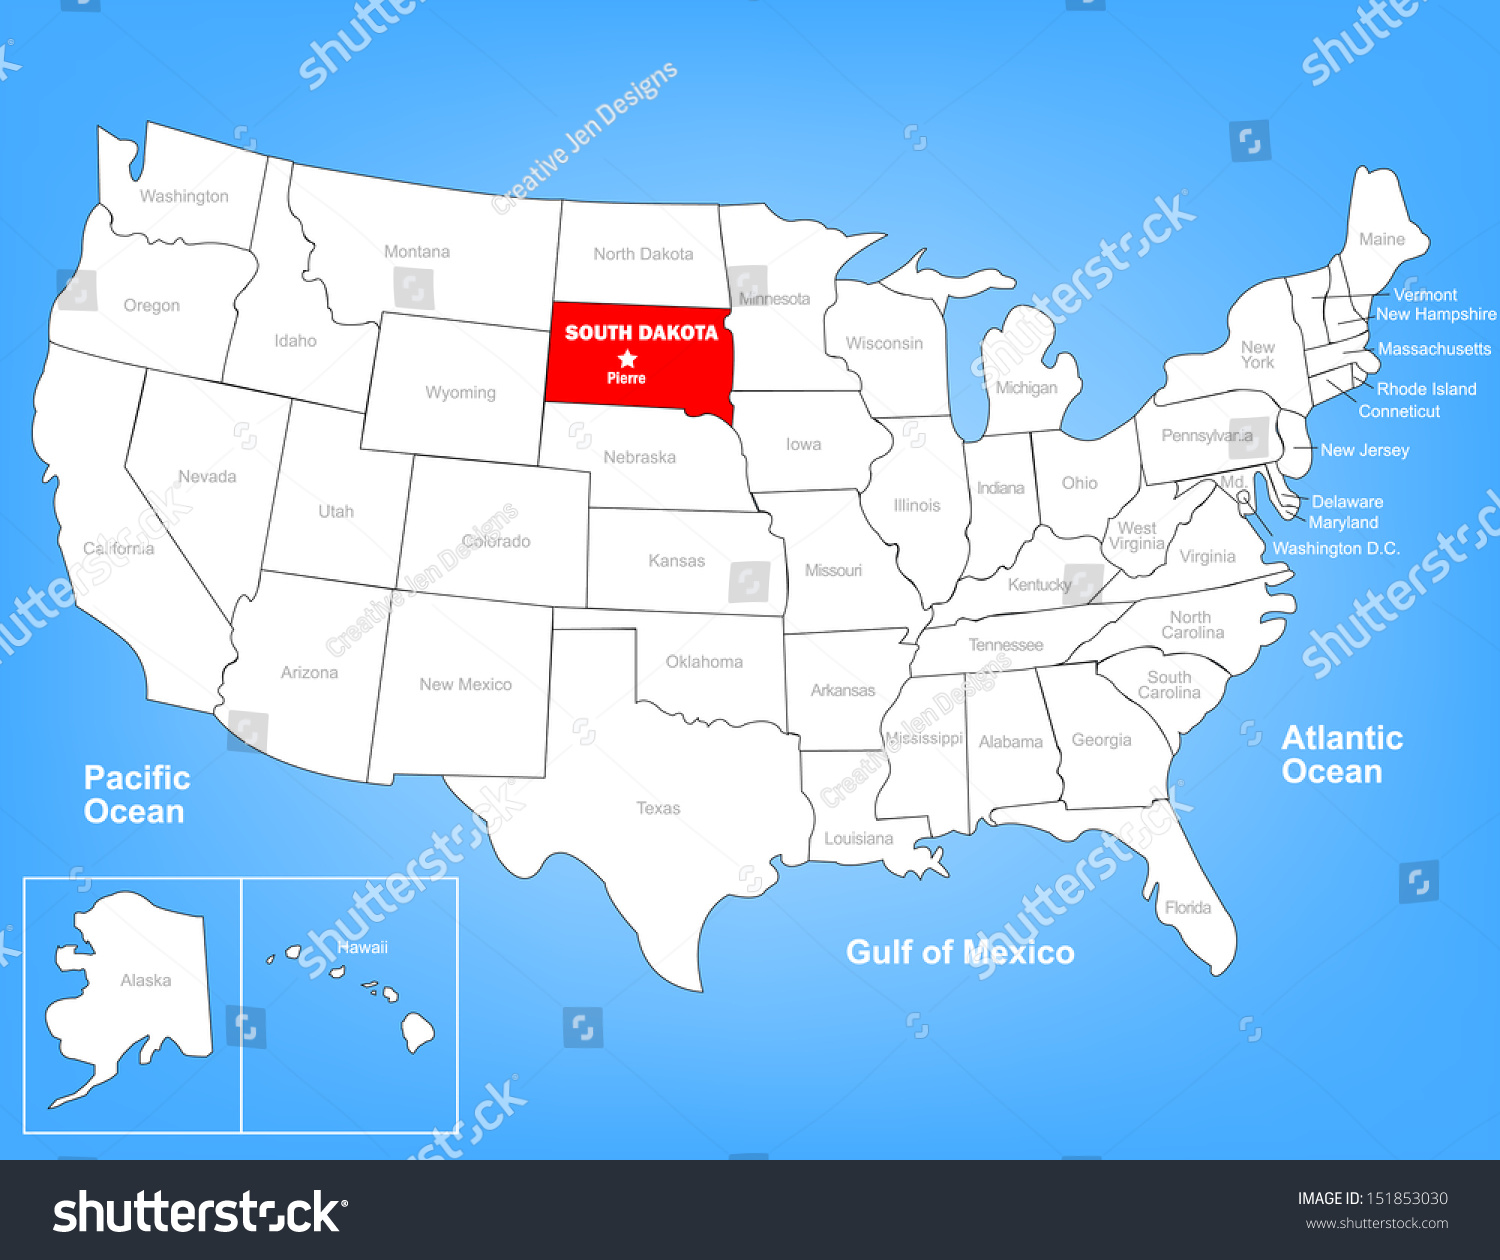 Vector Map United States Highlighting State Stock Vector - South dakota map united states